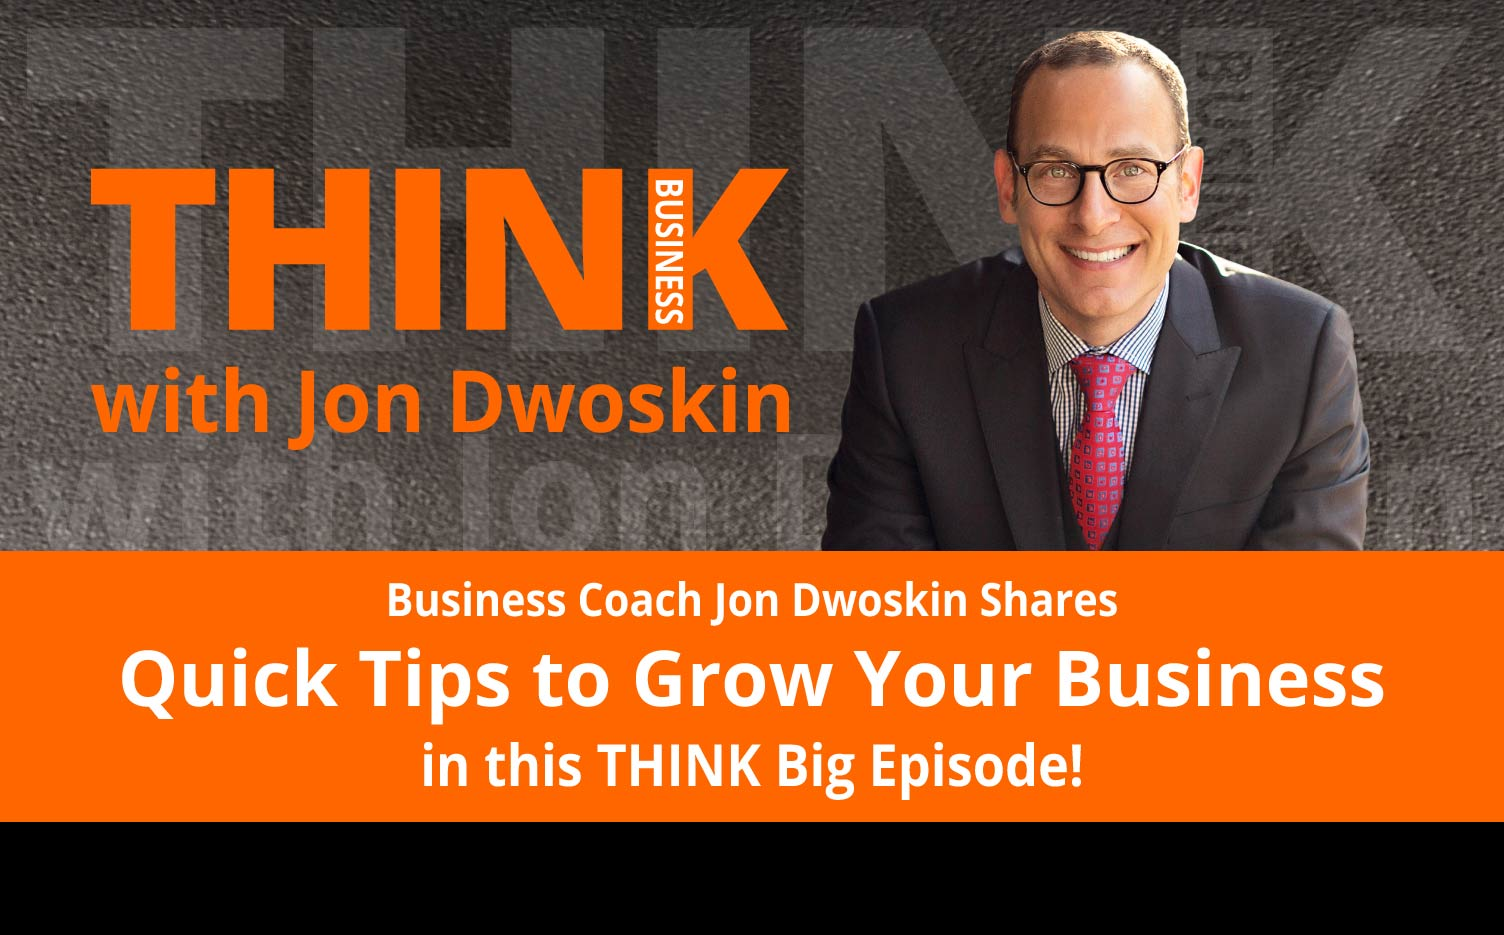 THINK Business Podcast: Tip Series